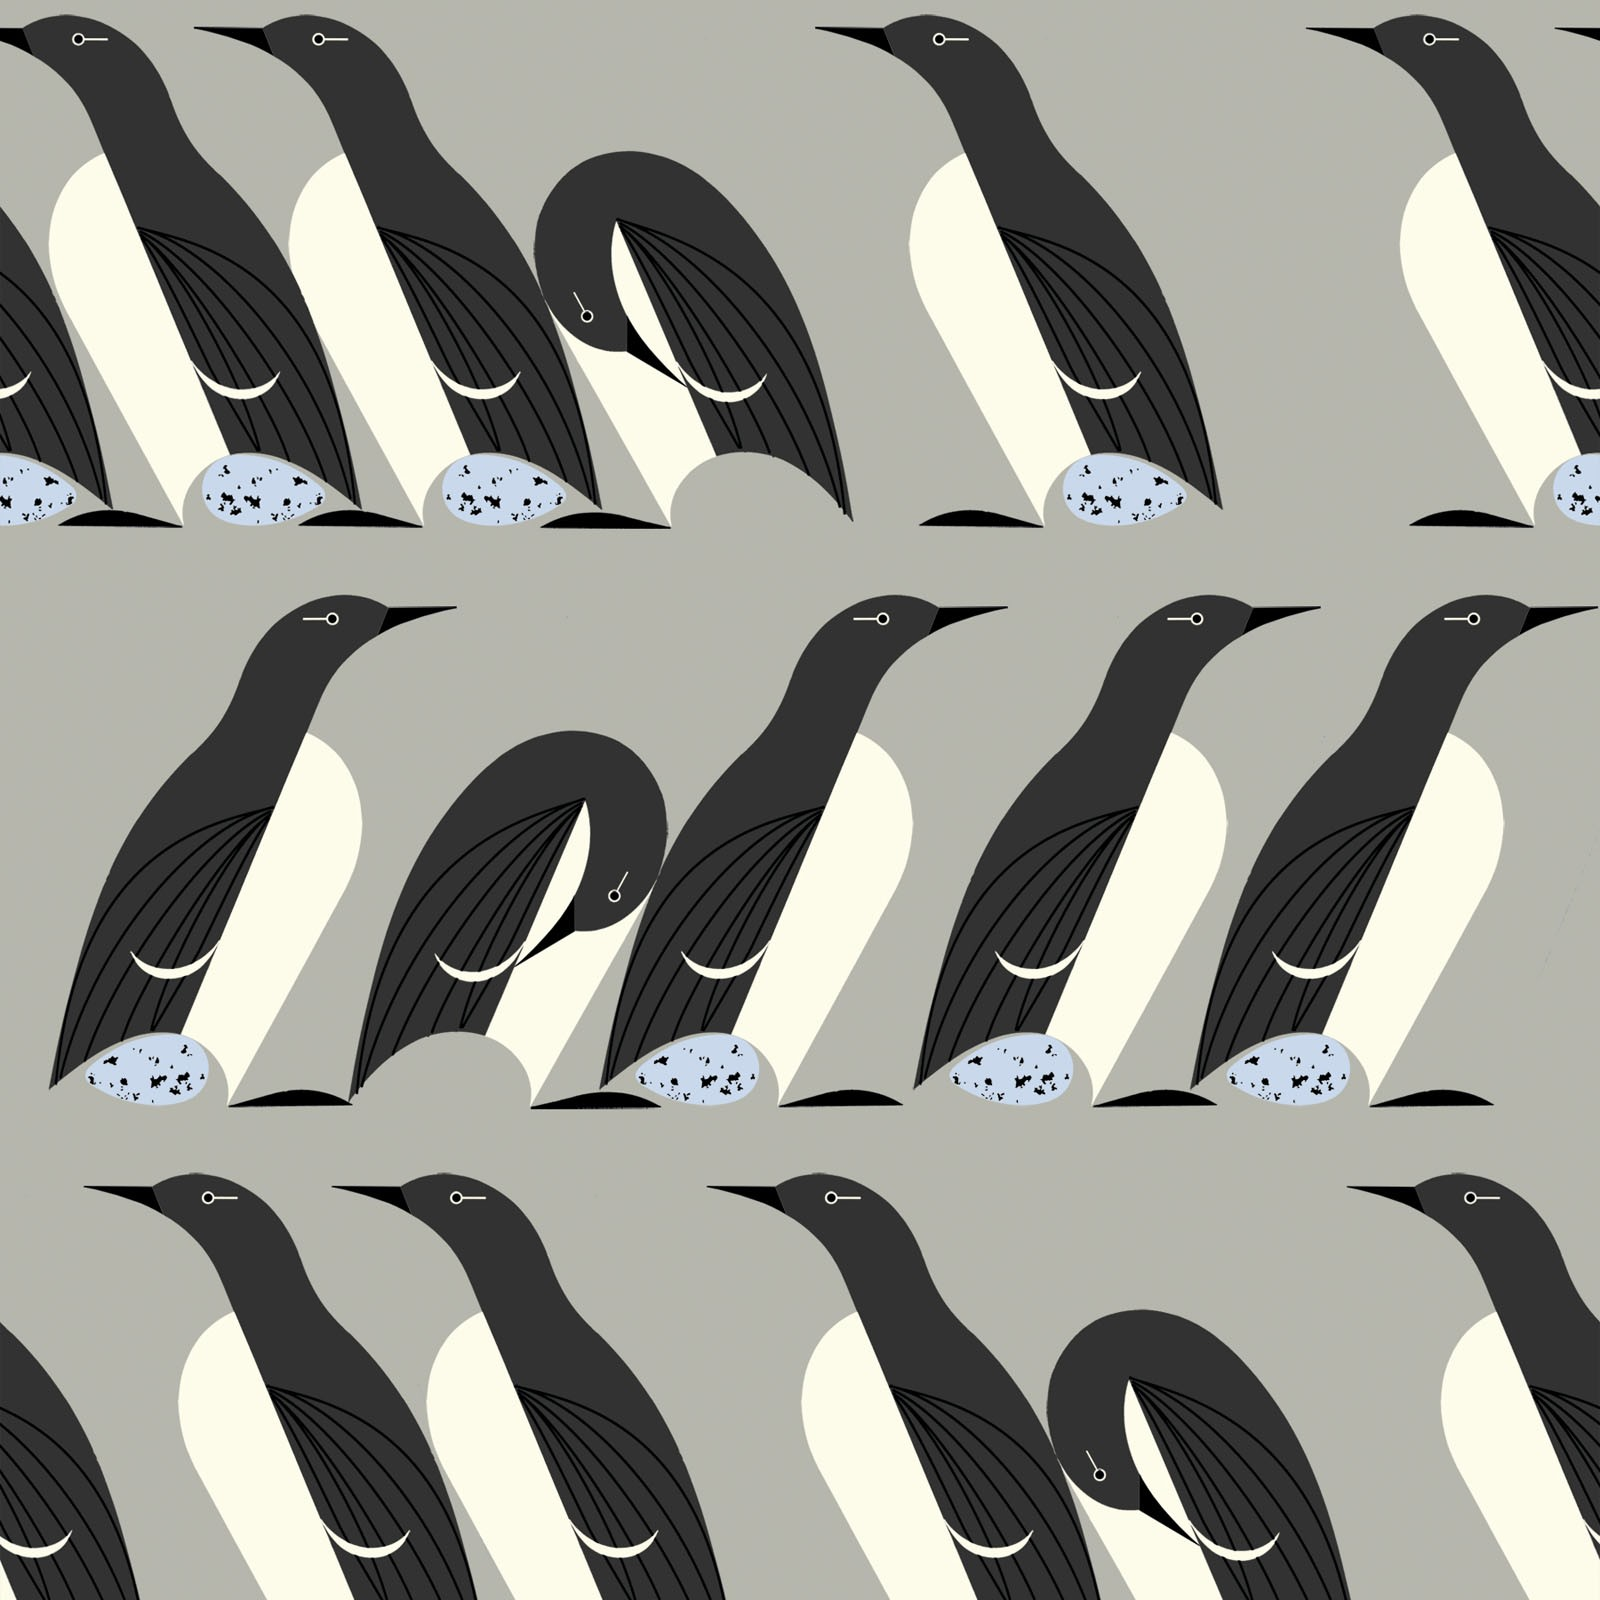 Murre (Poplin Fabric) by Charley Harper from the Best of Charley Harper collection for Birch #CH83